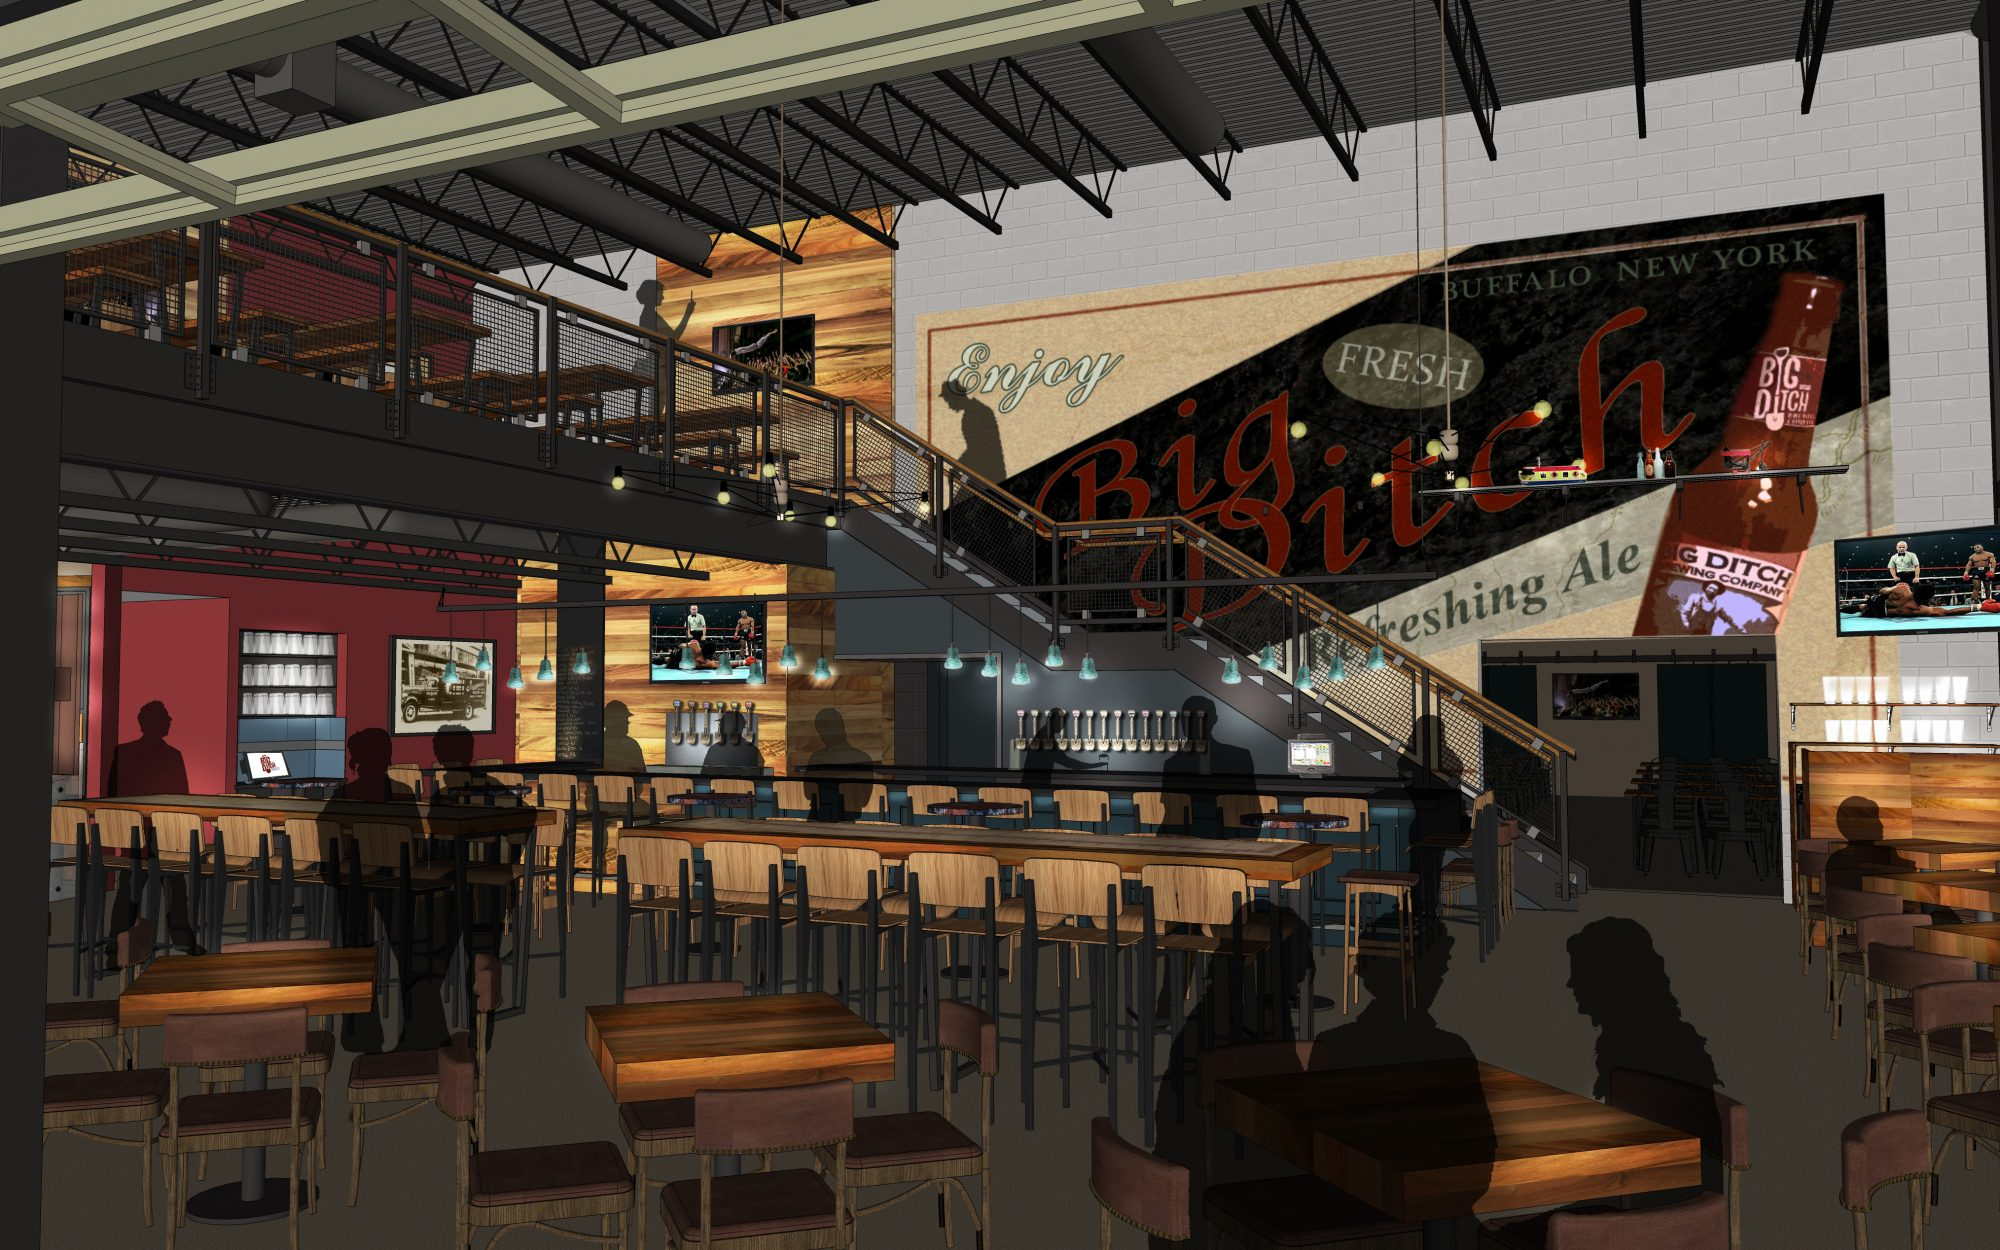 Rendering of Big Ditch Brewing Company's Tap Room